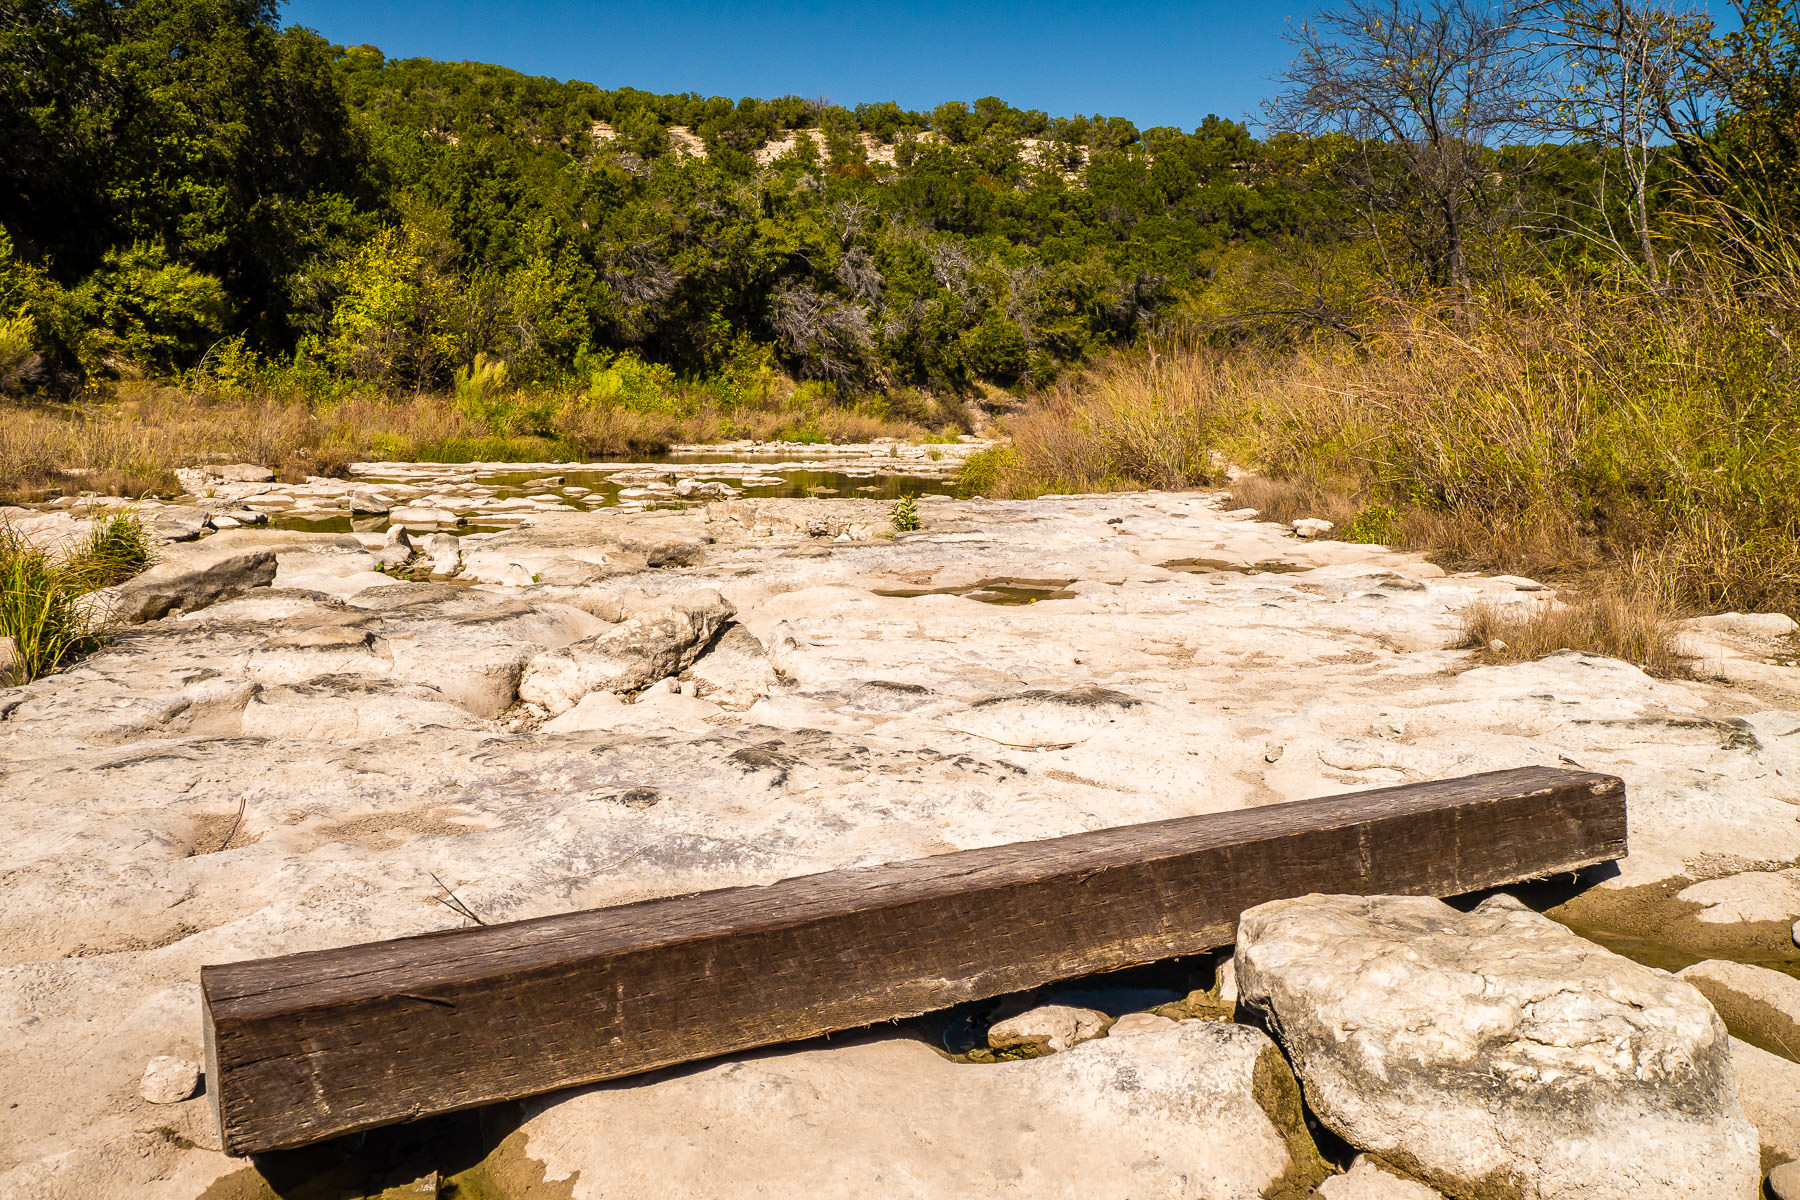 A wooden beam lies in the nearly-dry Paluxy River at Texas' Dinosaur Valley State Park.